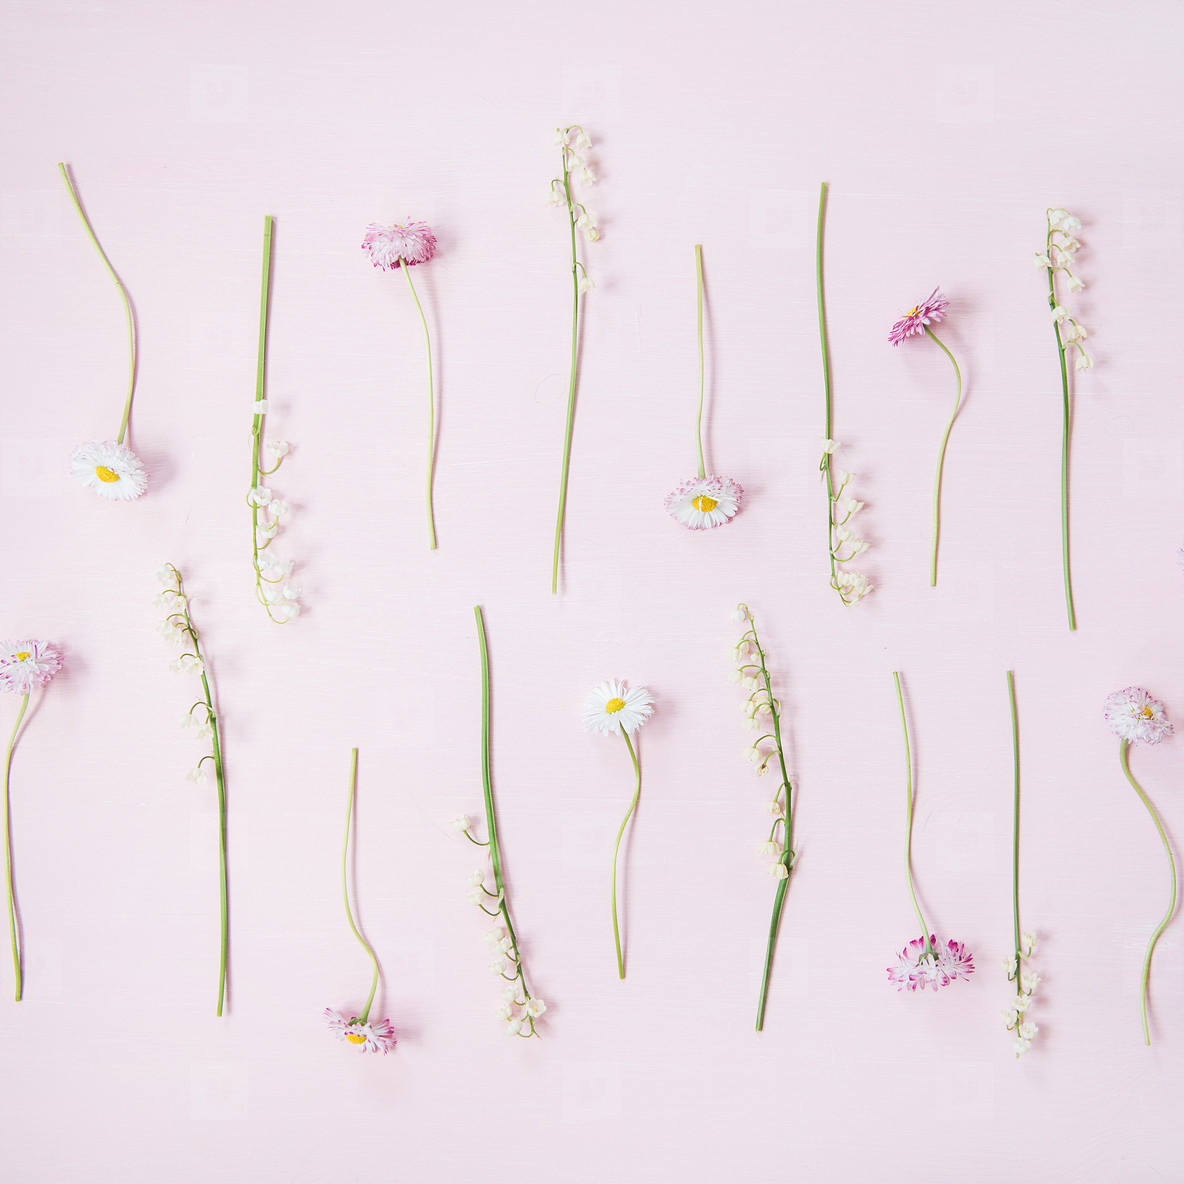 Flat lay of lily of the valley and daisy flowers over pastel pink background  square crop